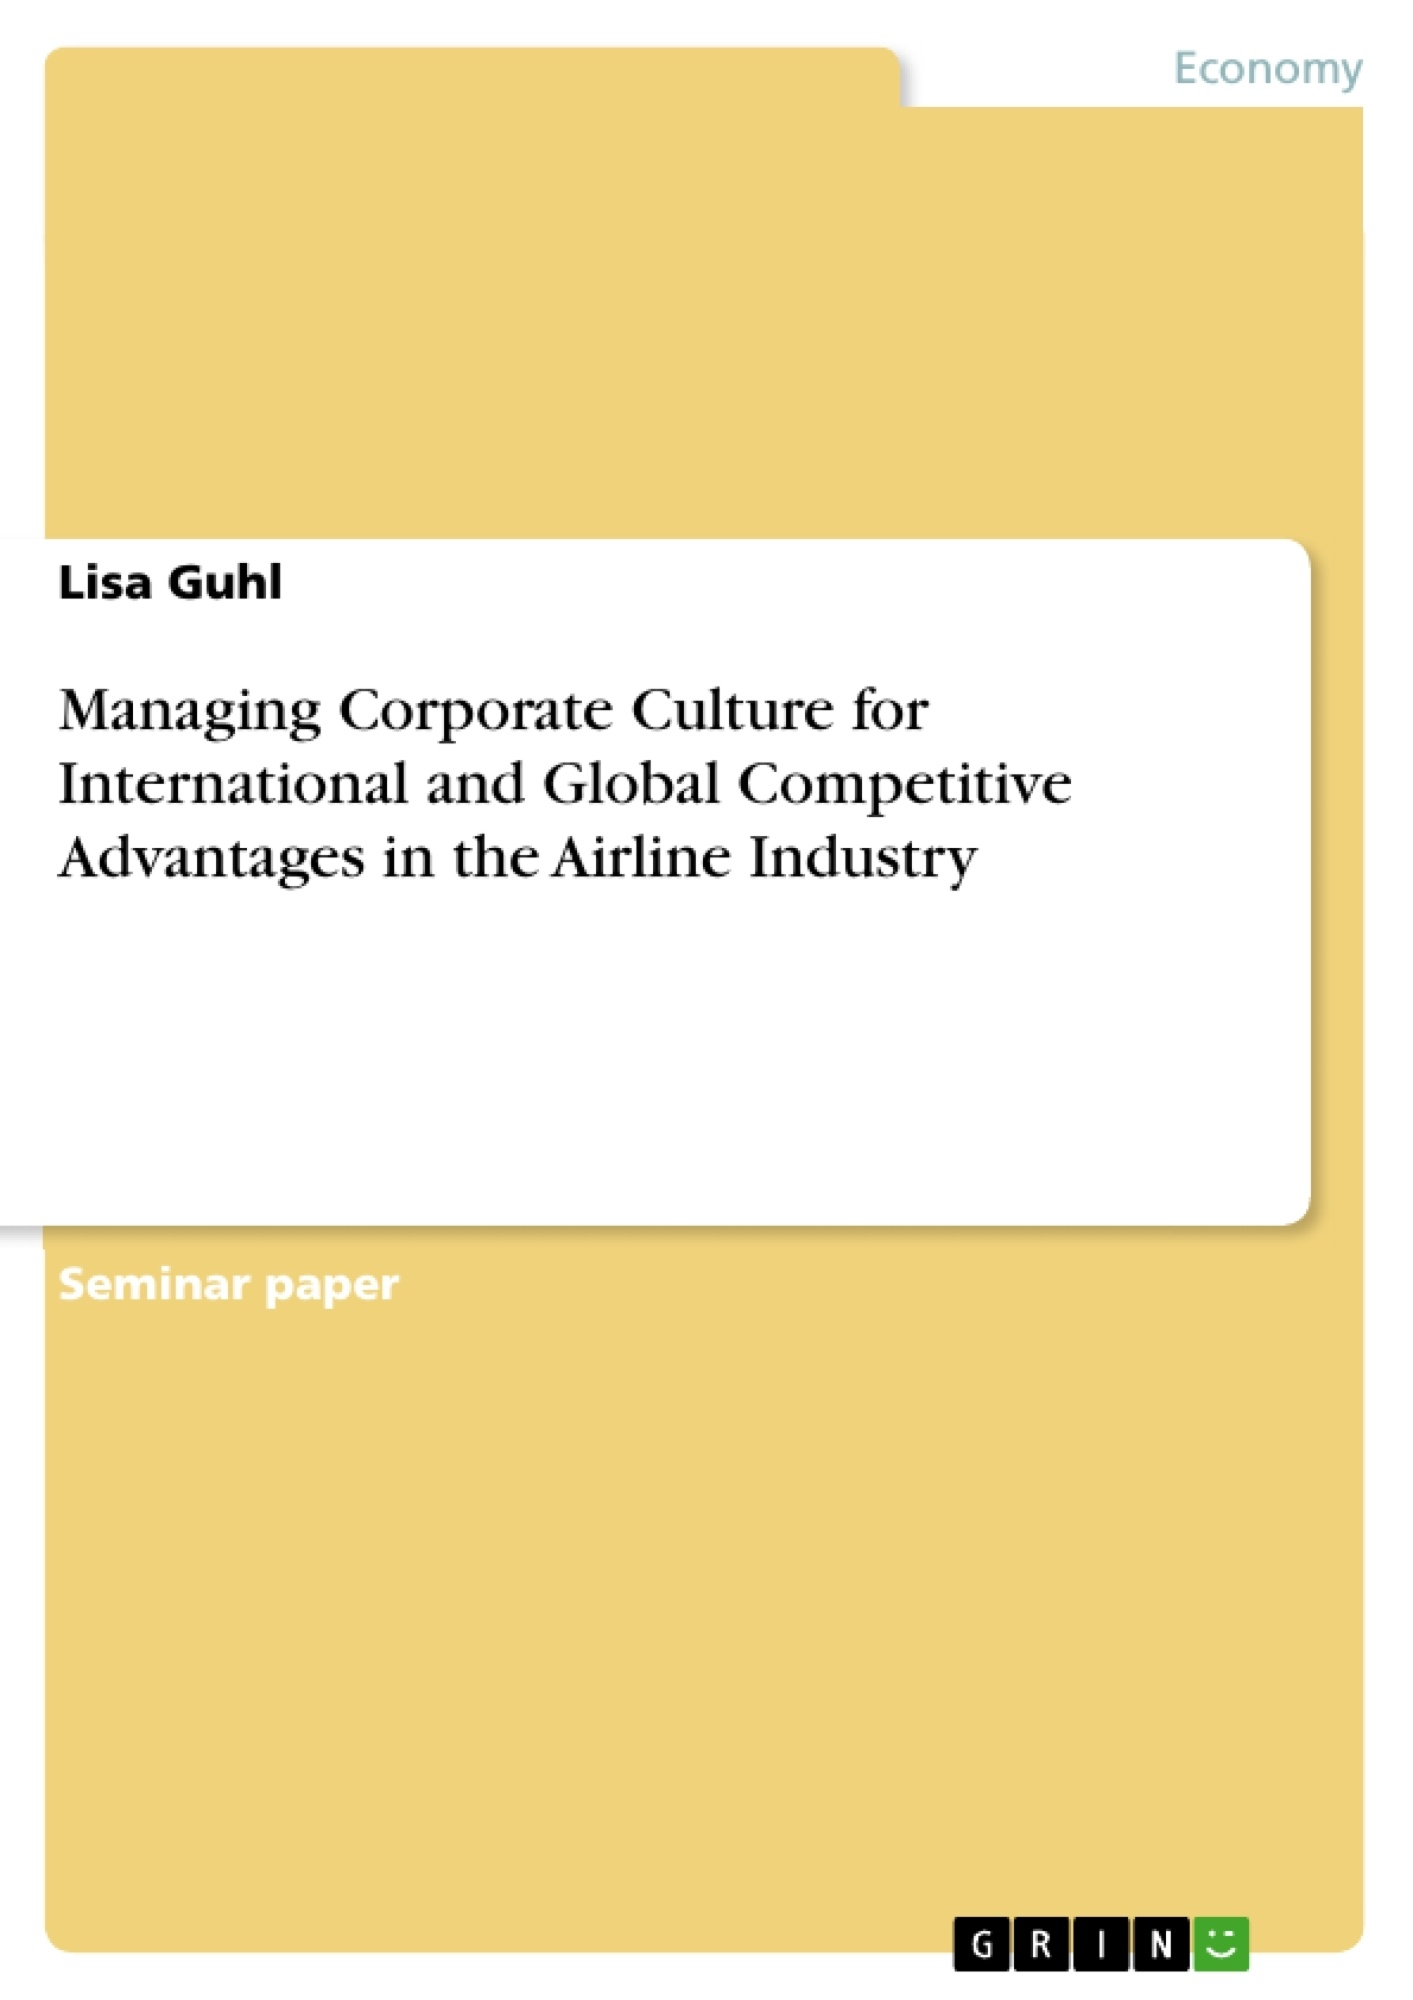 Title: Managing Corporate Culture for International and Global Competitive Advantages in the Airline Industry